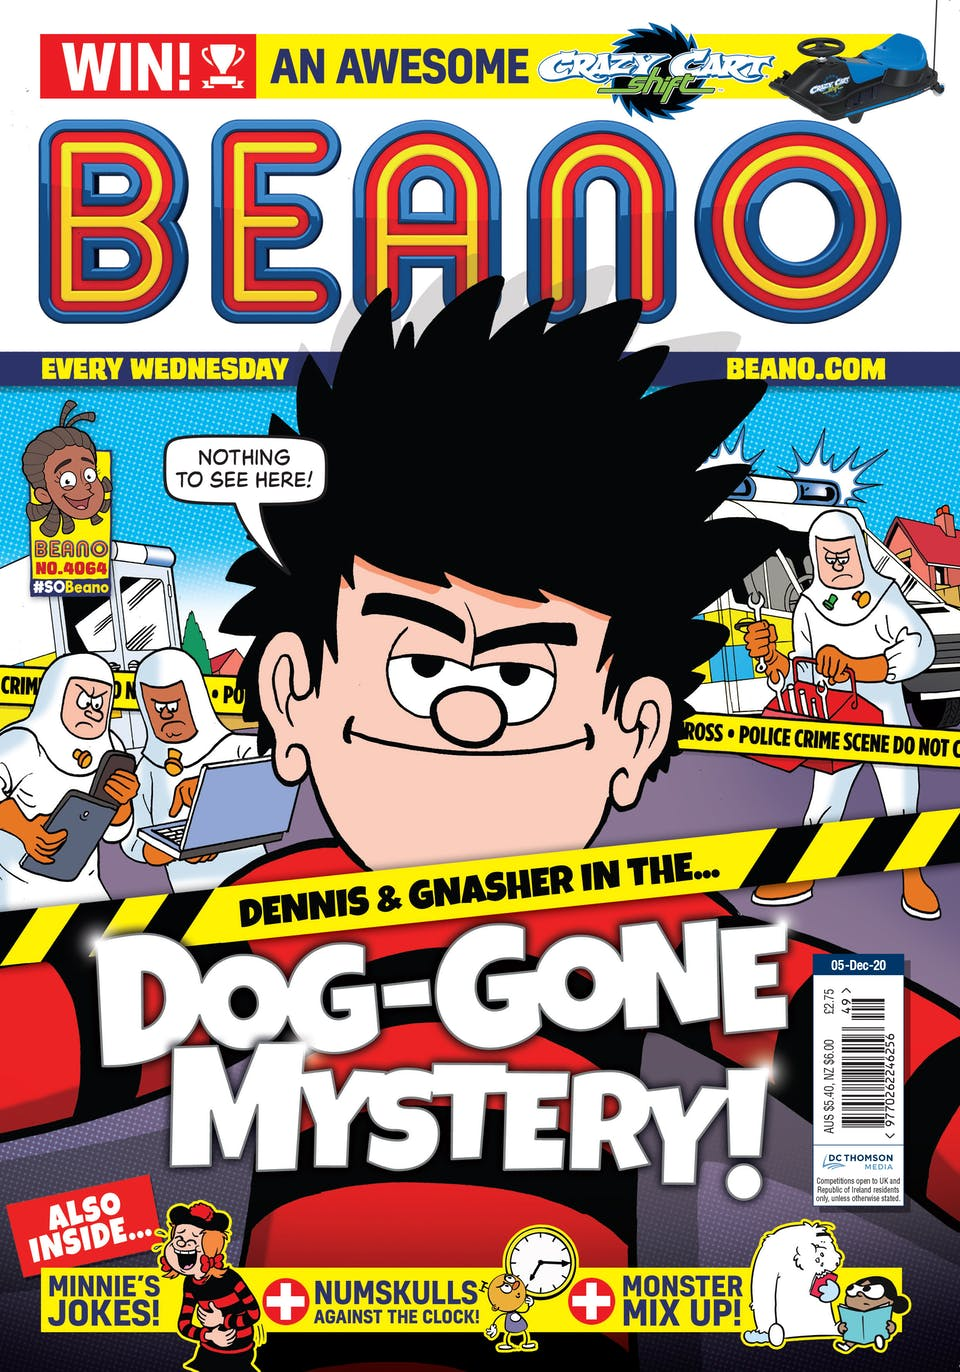 Inside Beano no. 4064 - It's a Dog-Gone Mystery for Dennis!